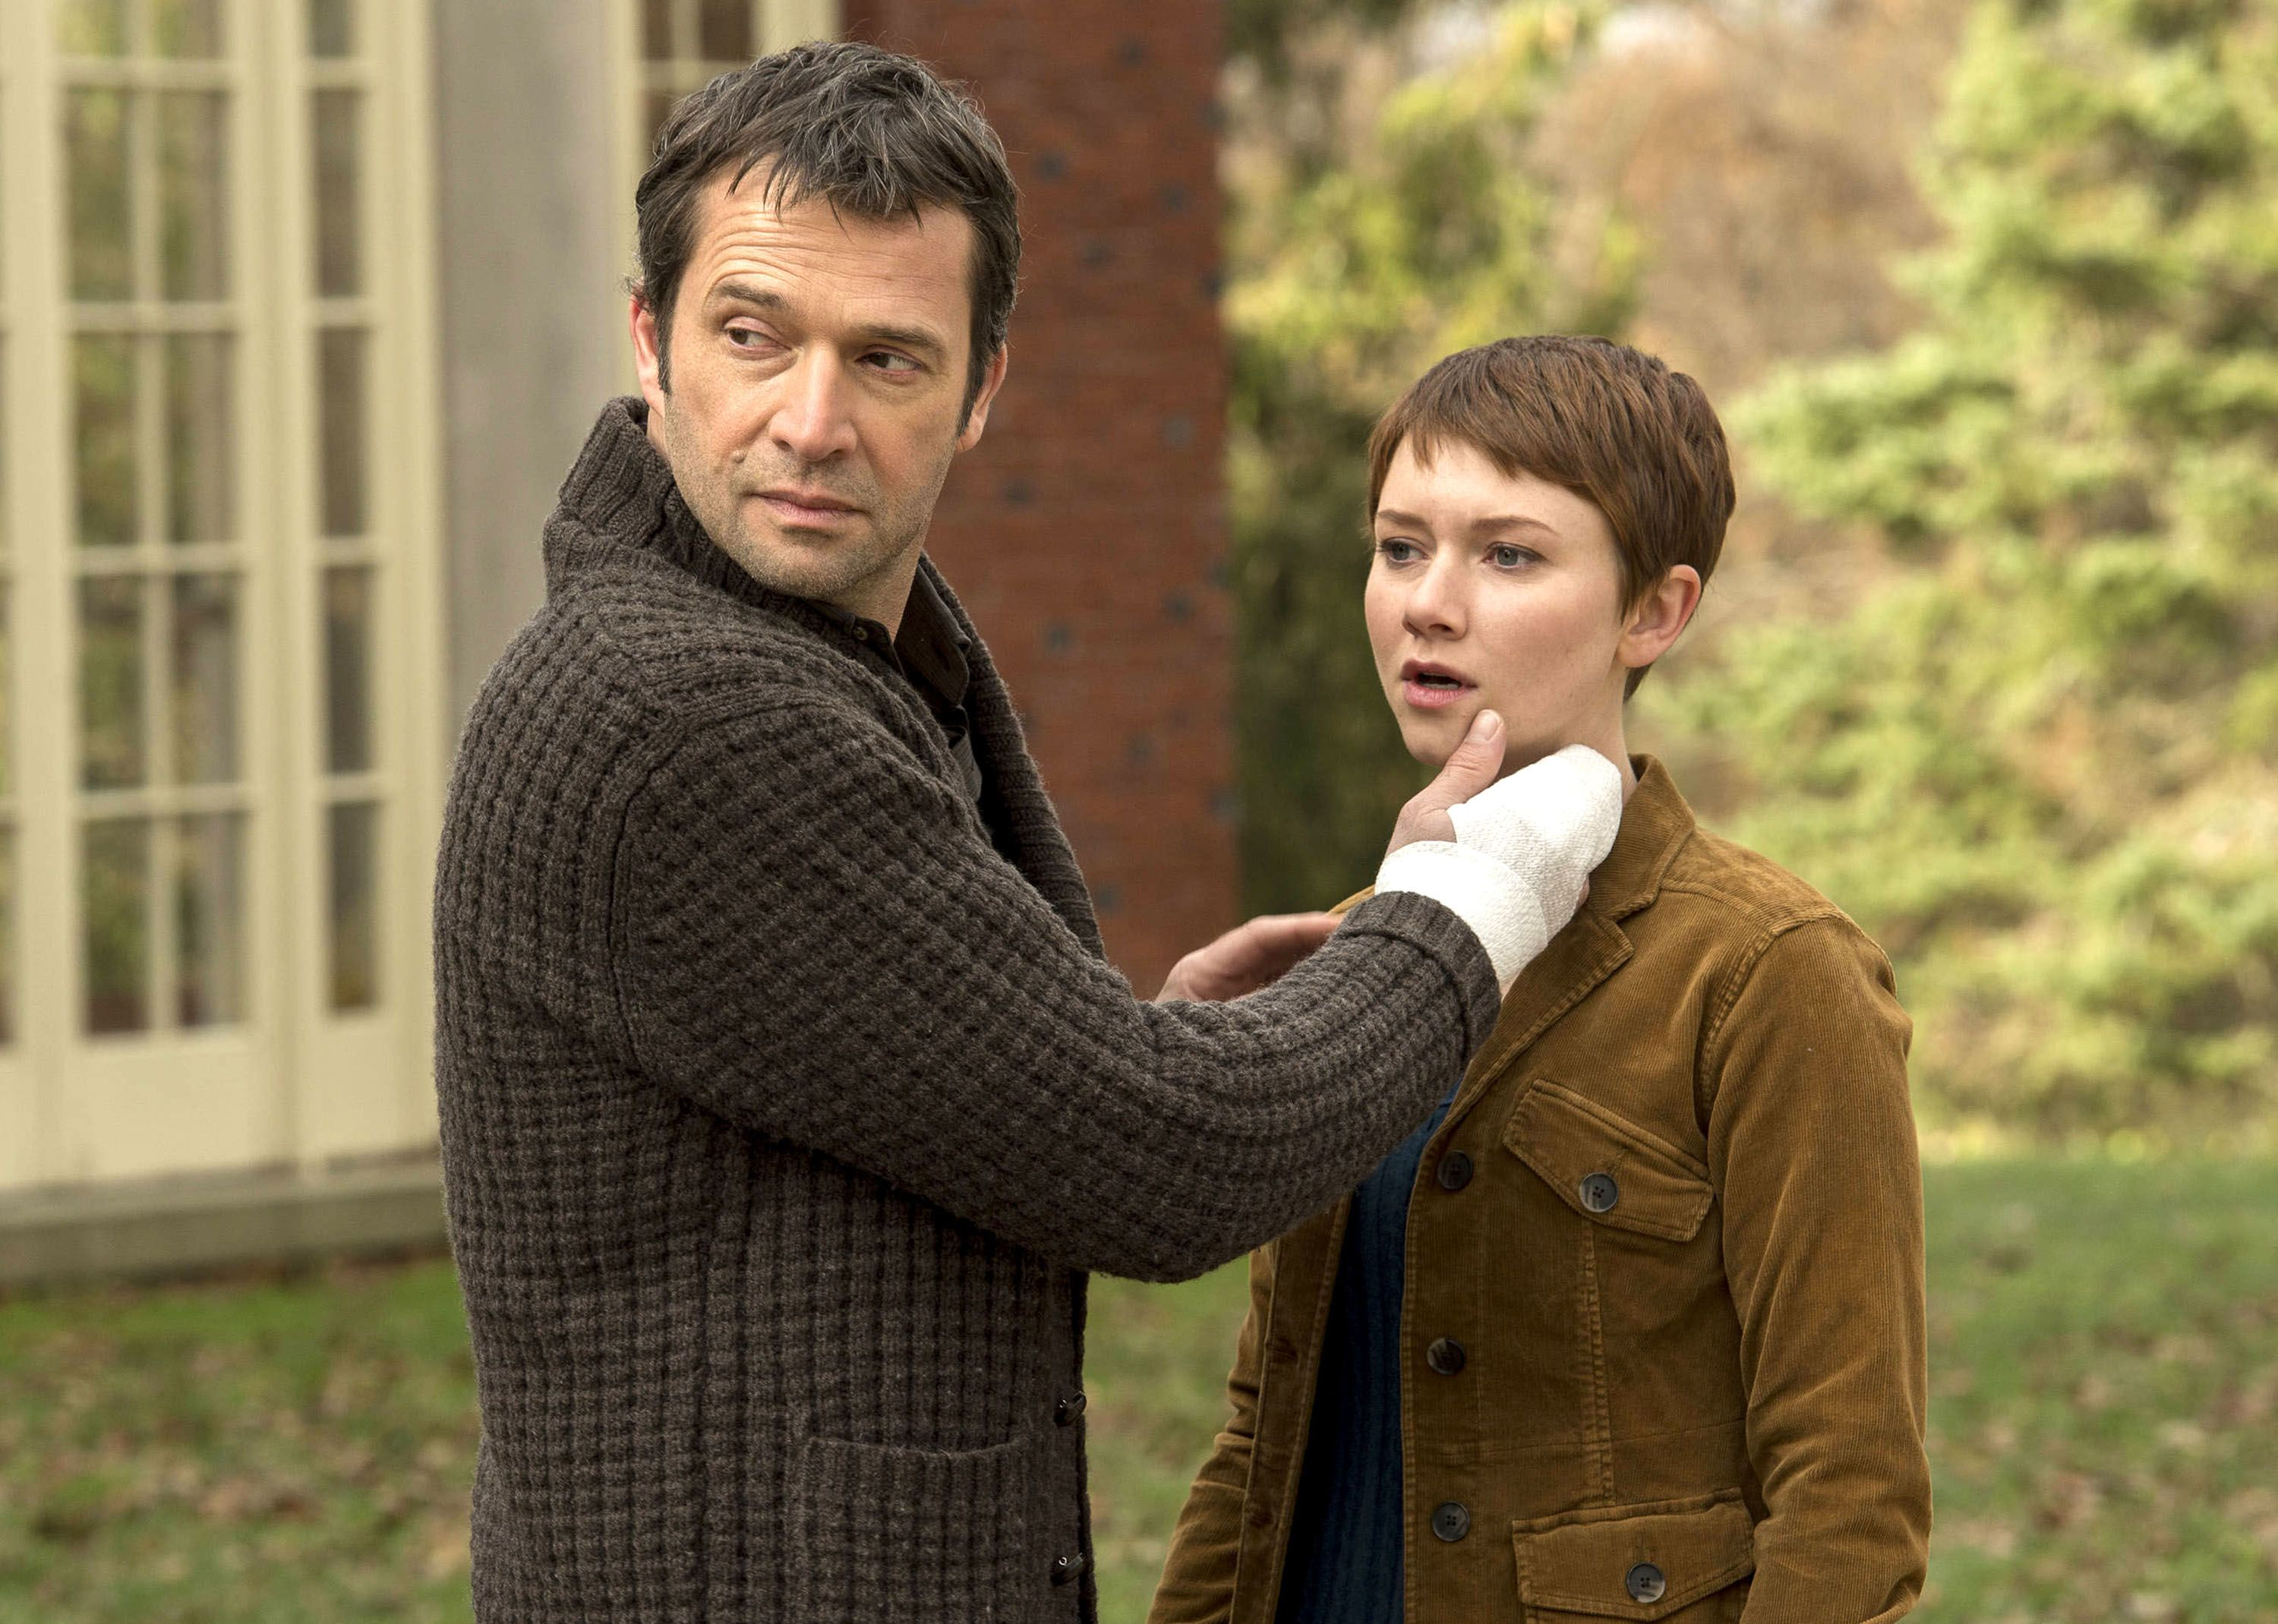 James Purefoy as Joe Carroll and Valorie Curry as Emma Hill; The Following (2013-14)